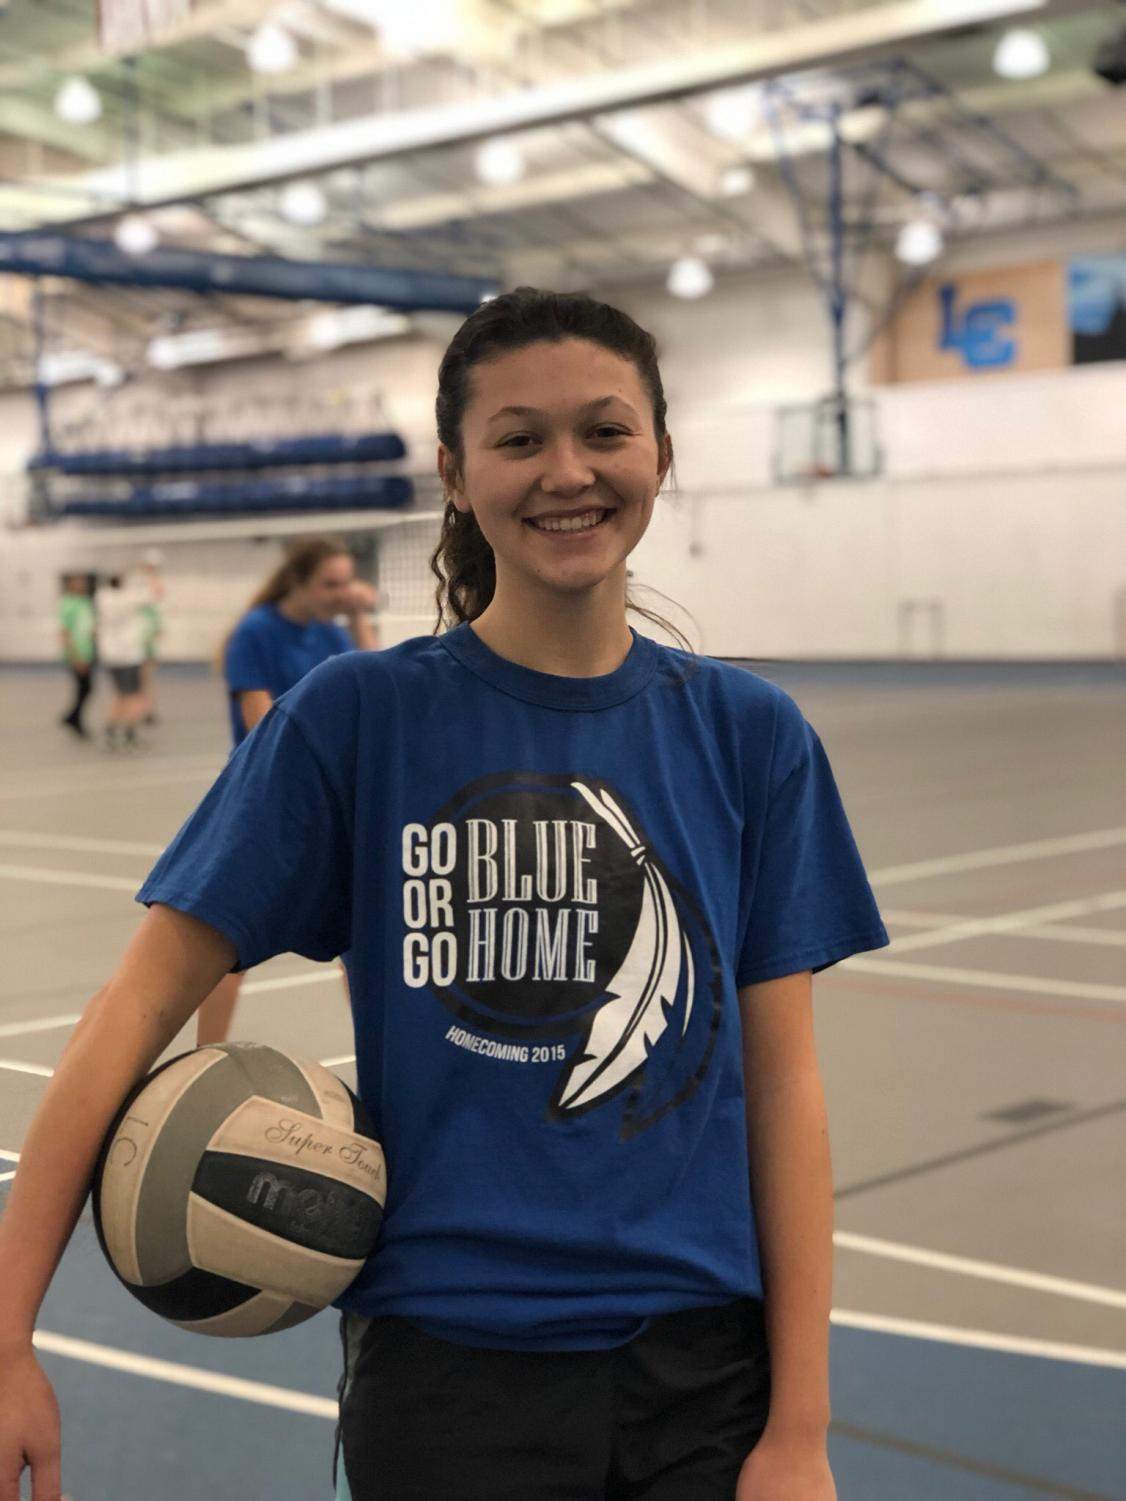 Katharine Mahoney (11) poses with a volleyball before her big game last Tuesday. After playing two games, her team won one and lost the other against their opponents.